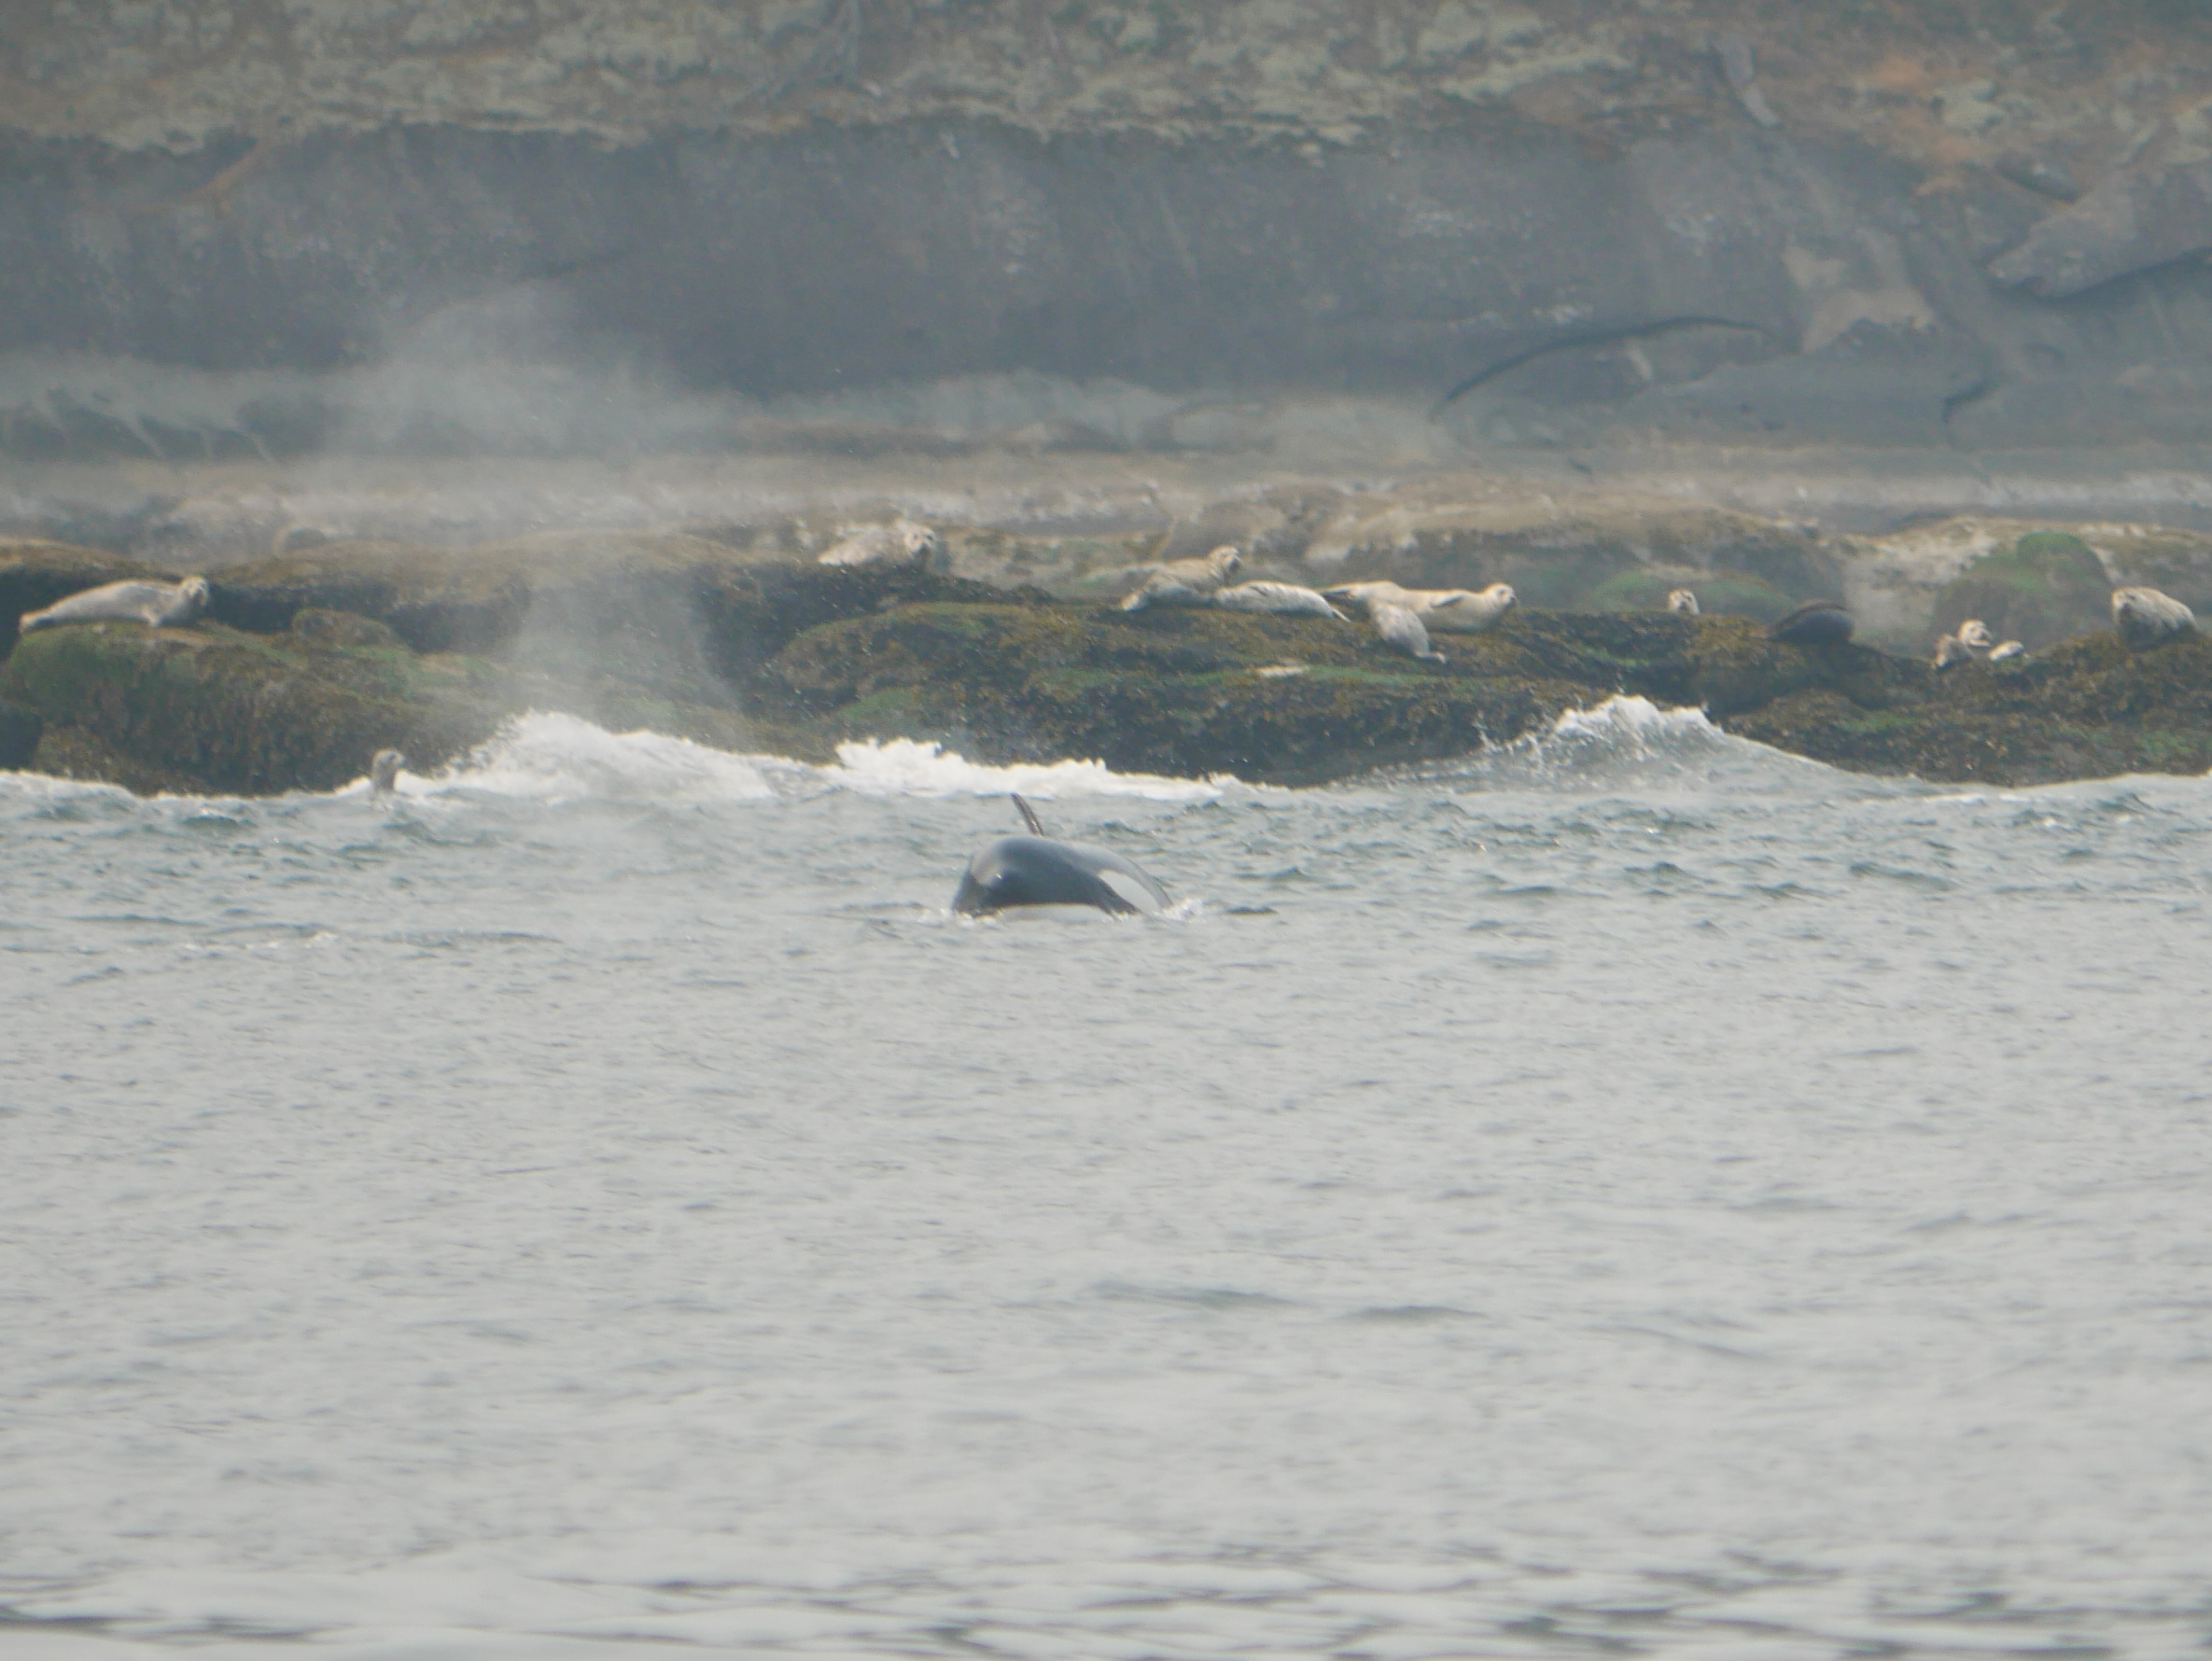 Peaking out of the water during the hunt. Check out those scared seals in the background. Photo by Val Watson.